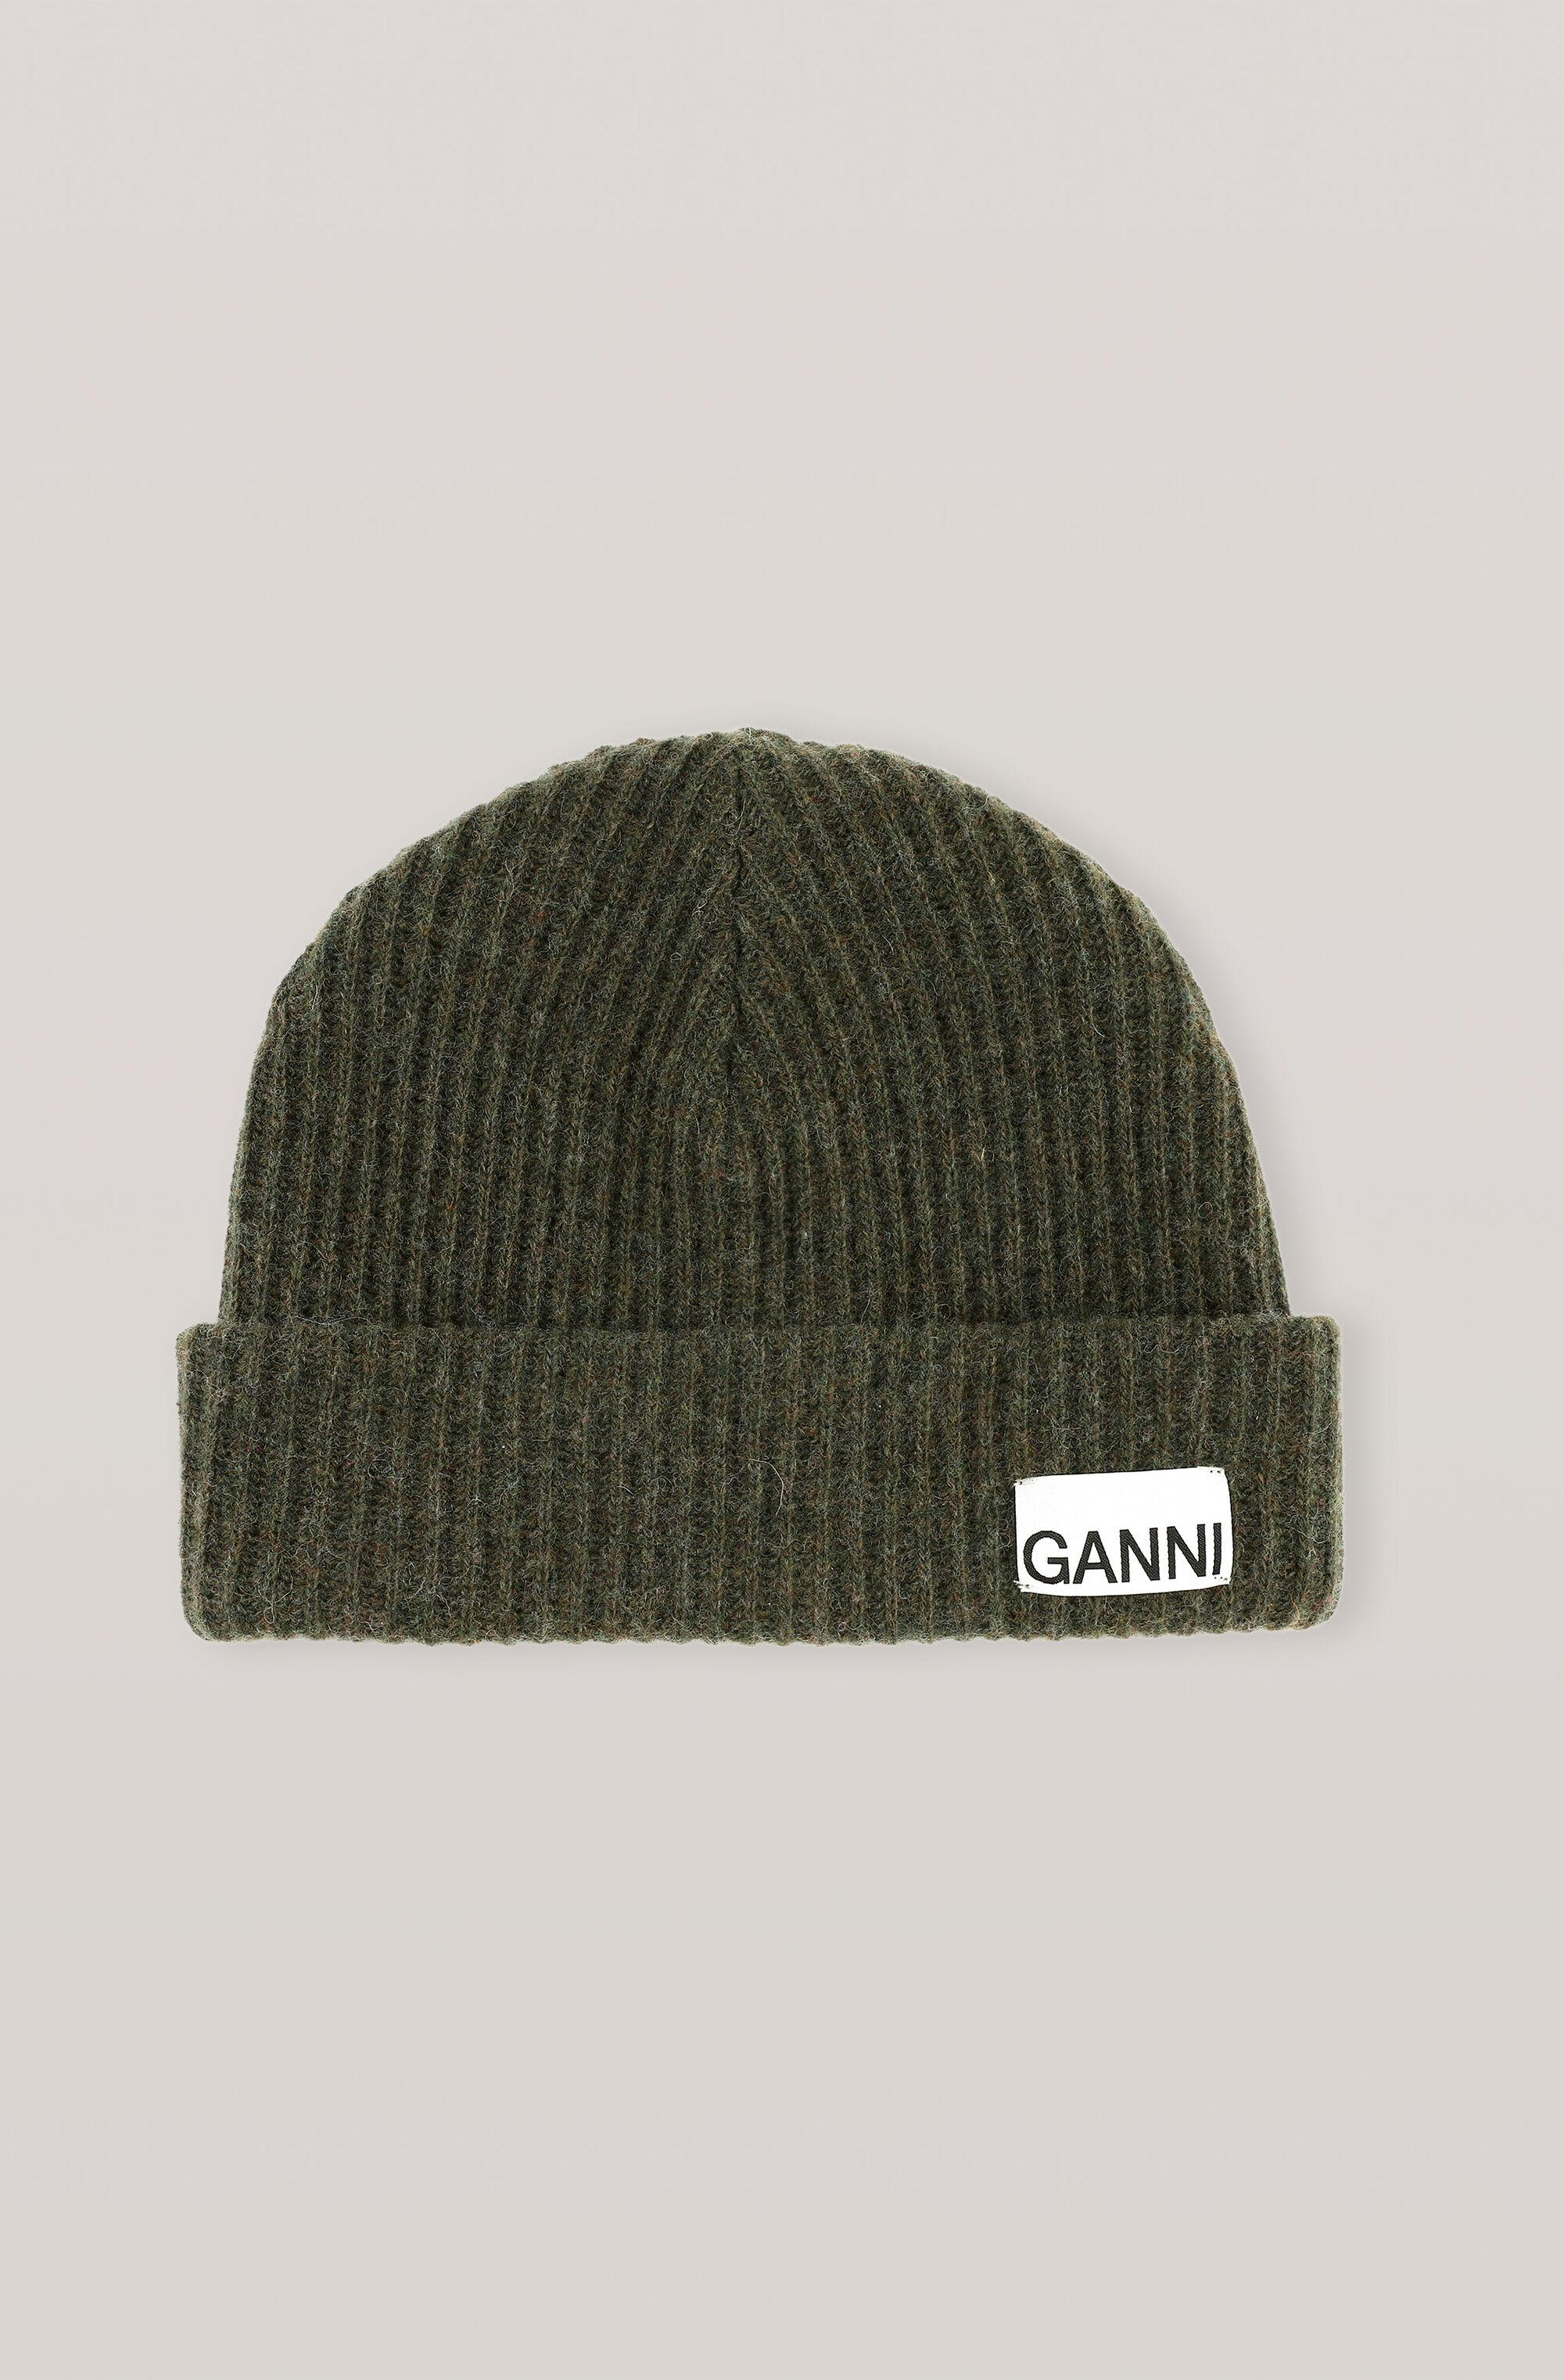 Recycled Wool Knit Hat